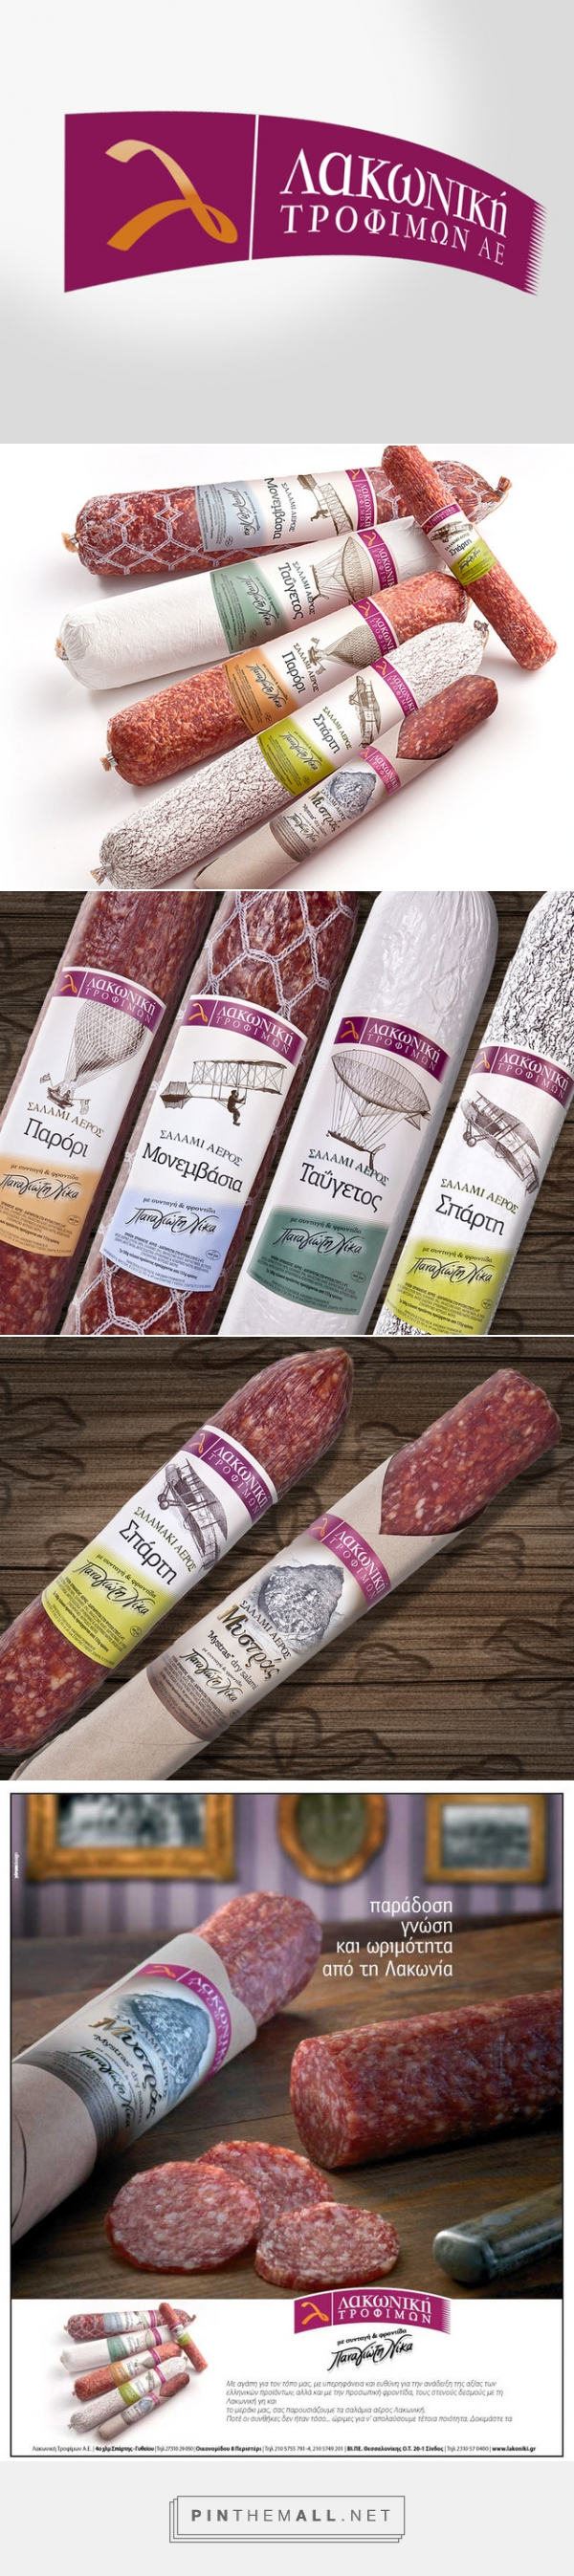 Lakoniki Dry Salami packaging by YonasDesign curated by Packaging Diva PD. Now I'm thinking about lunch already : )